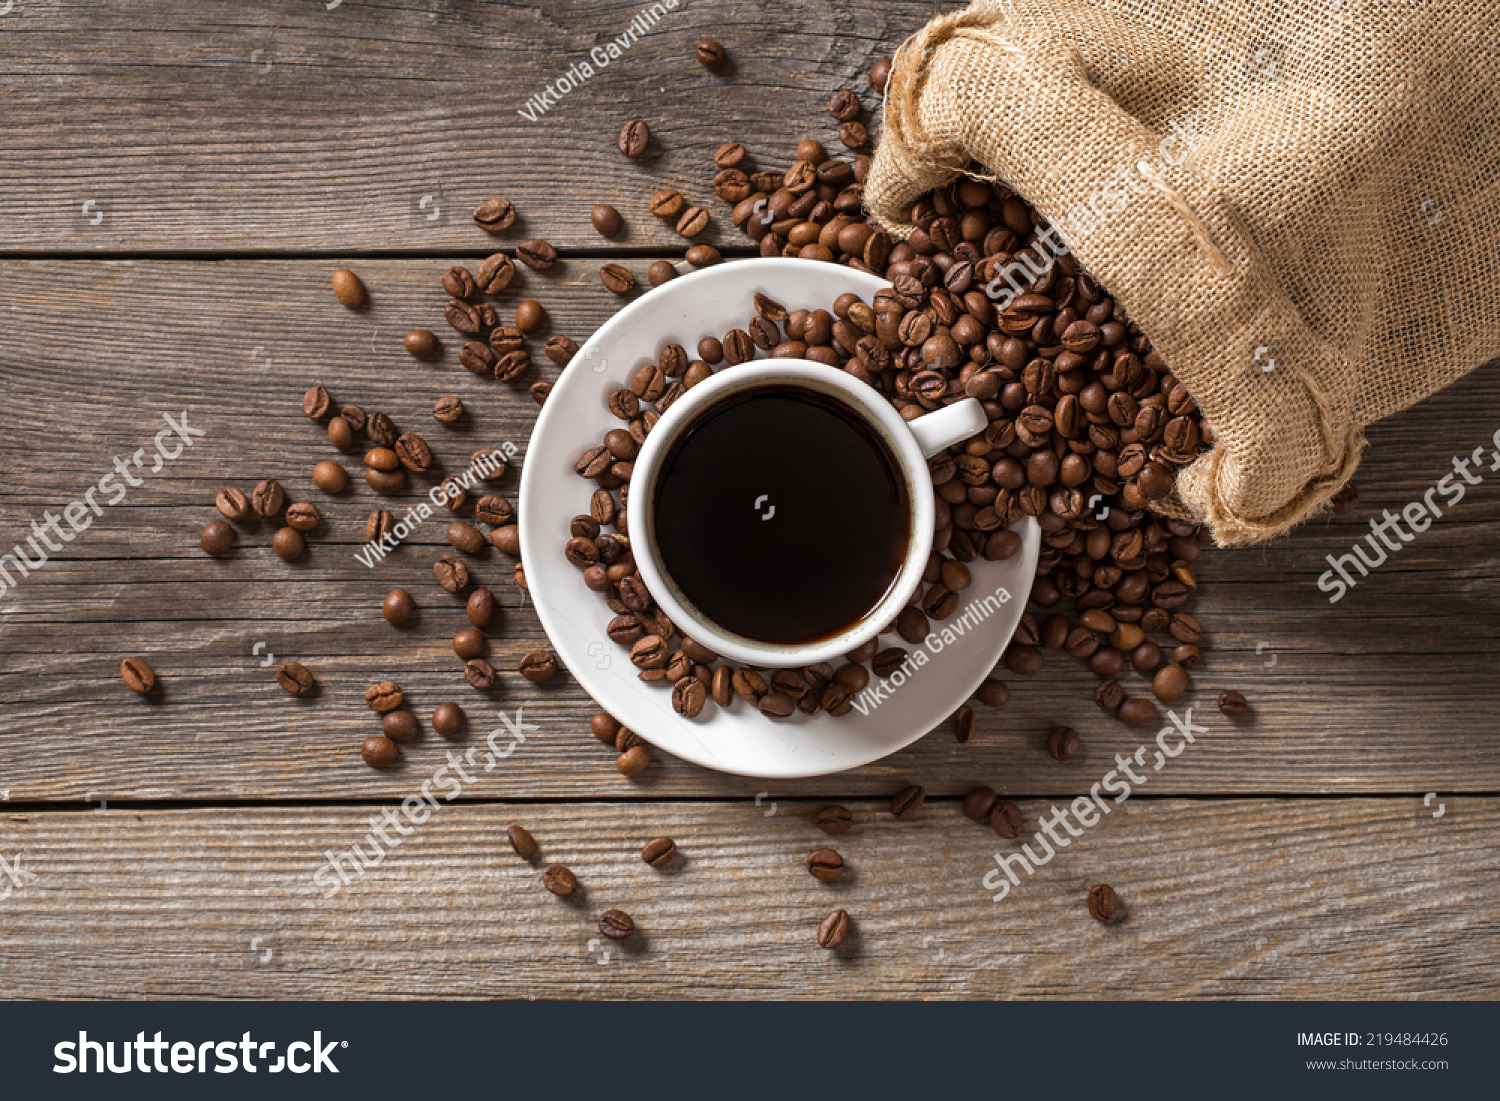 Coffee cup coffee bag on wooden stock photo 219484426 shutterstock coffee cup with coffee bag on wooden table view from top geotapseo Gallery